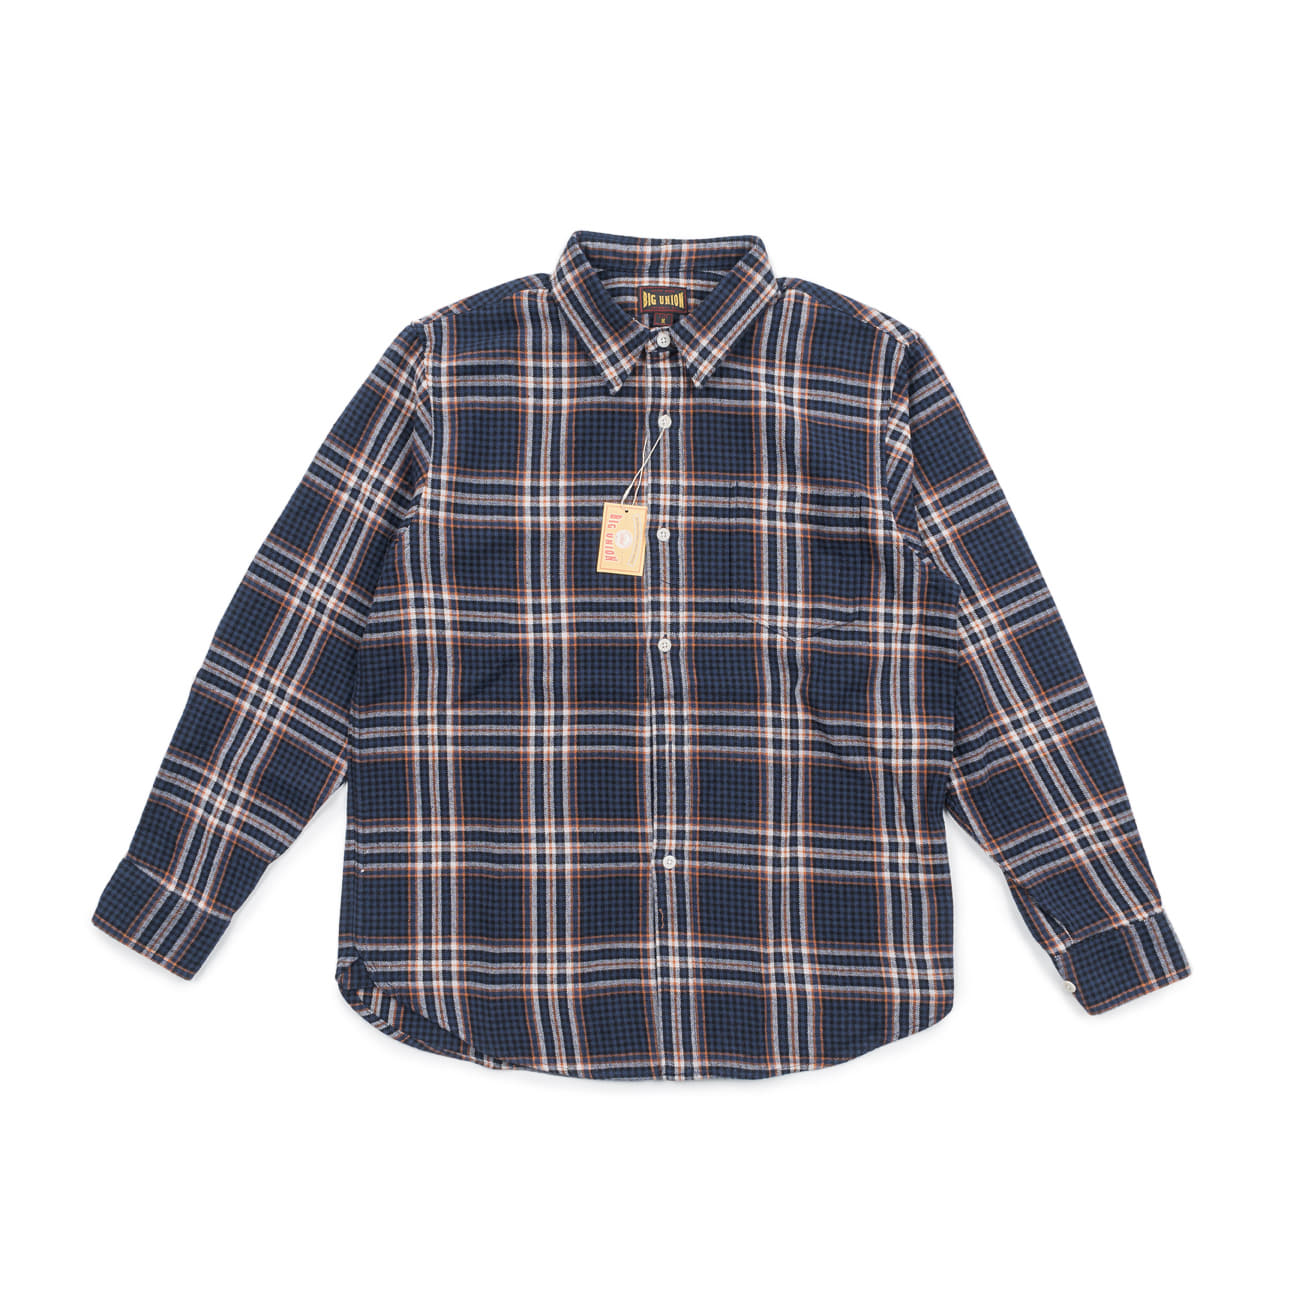 17FW Check Flannel Shirt